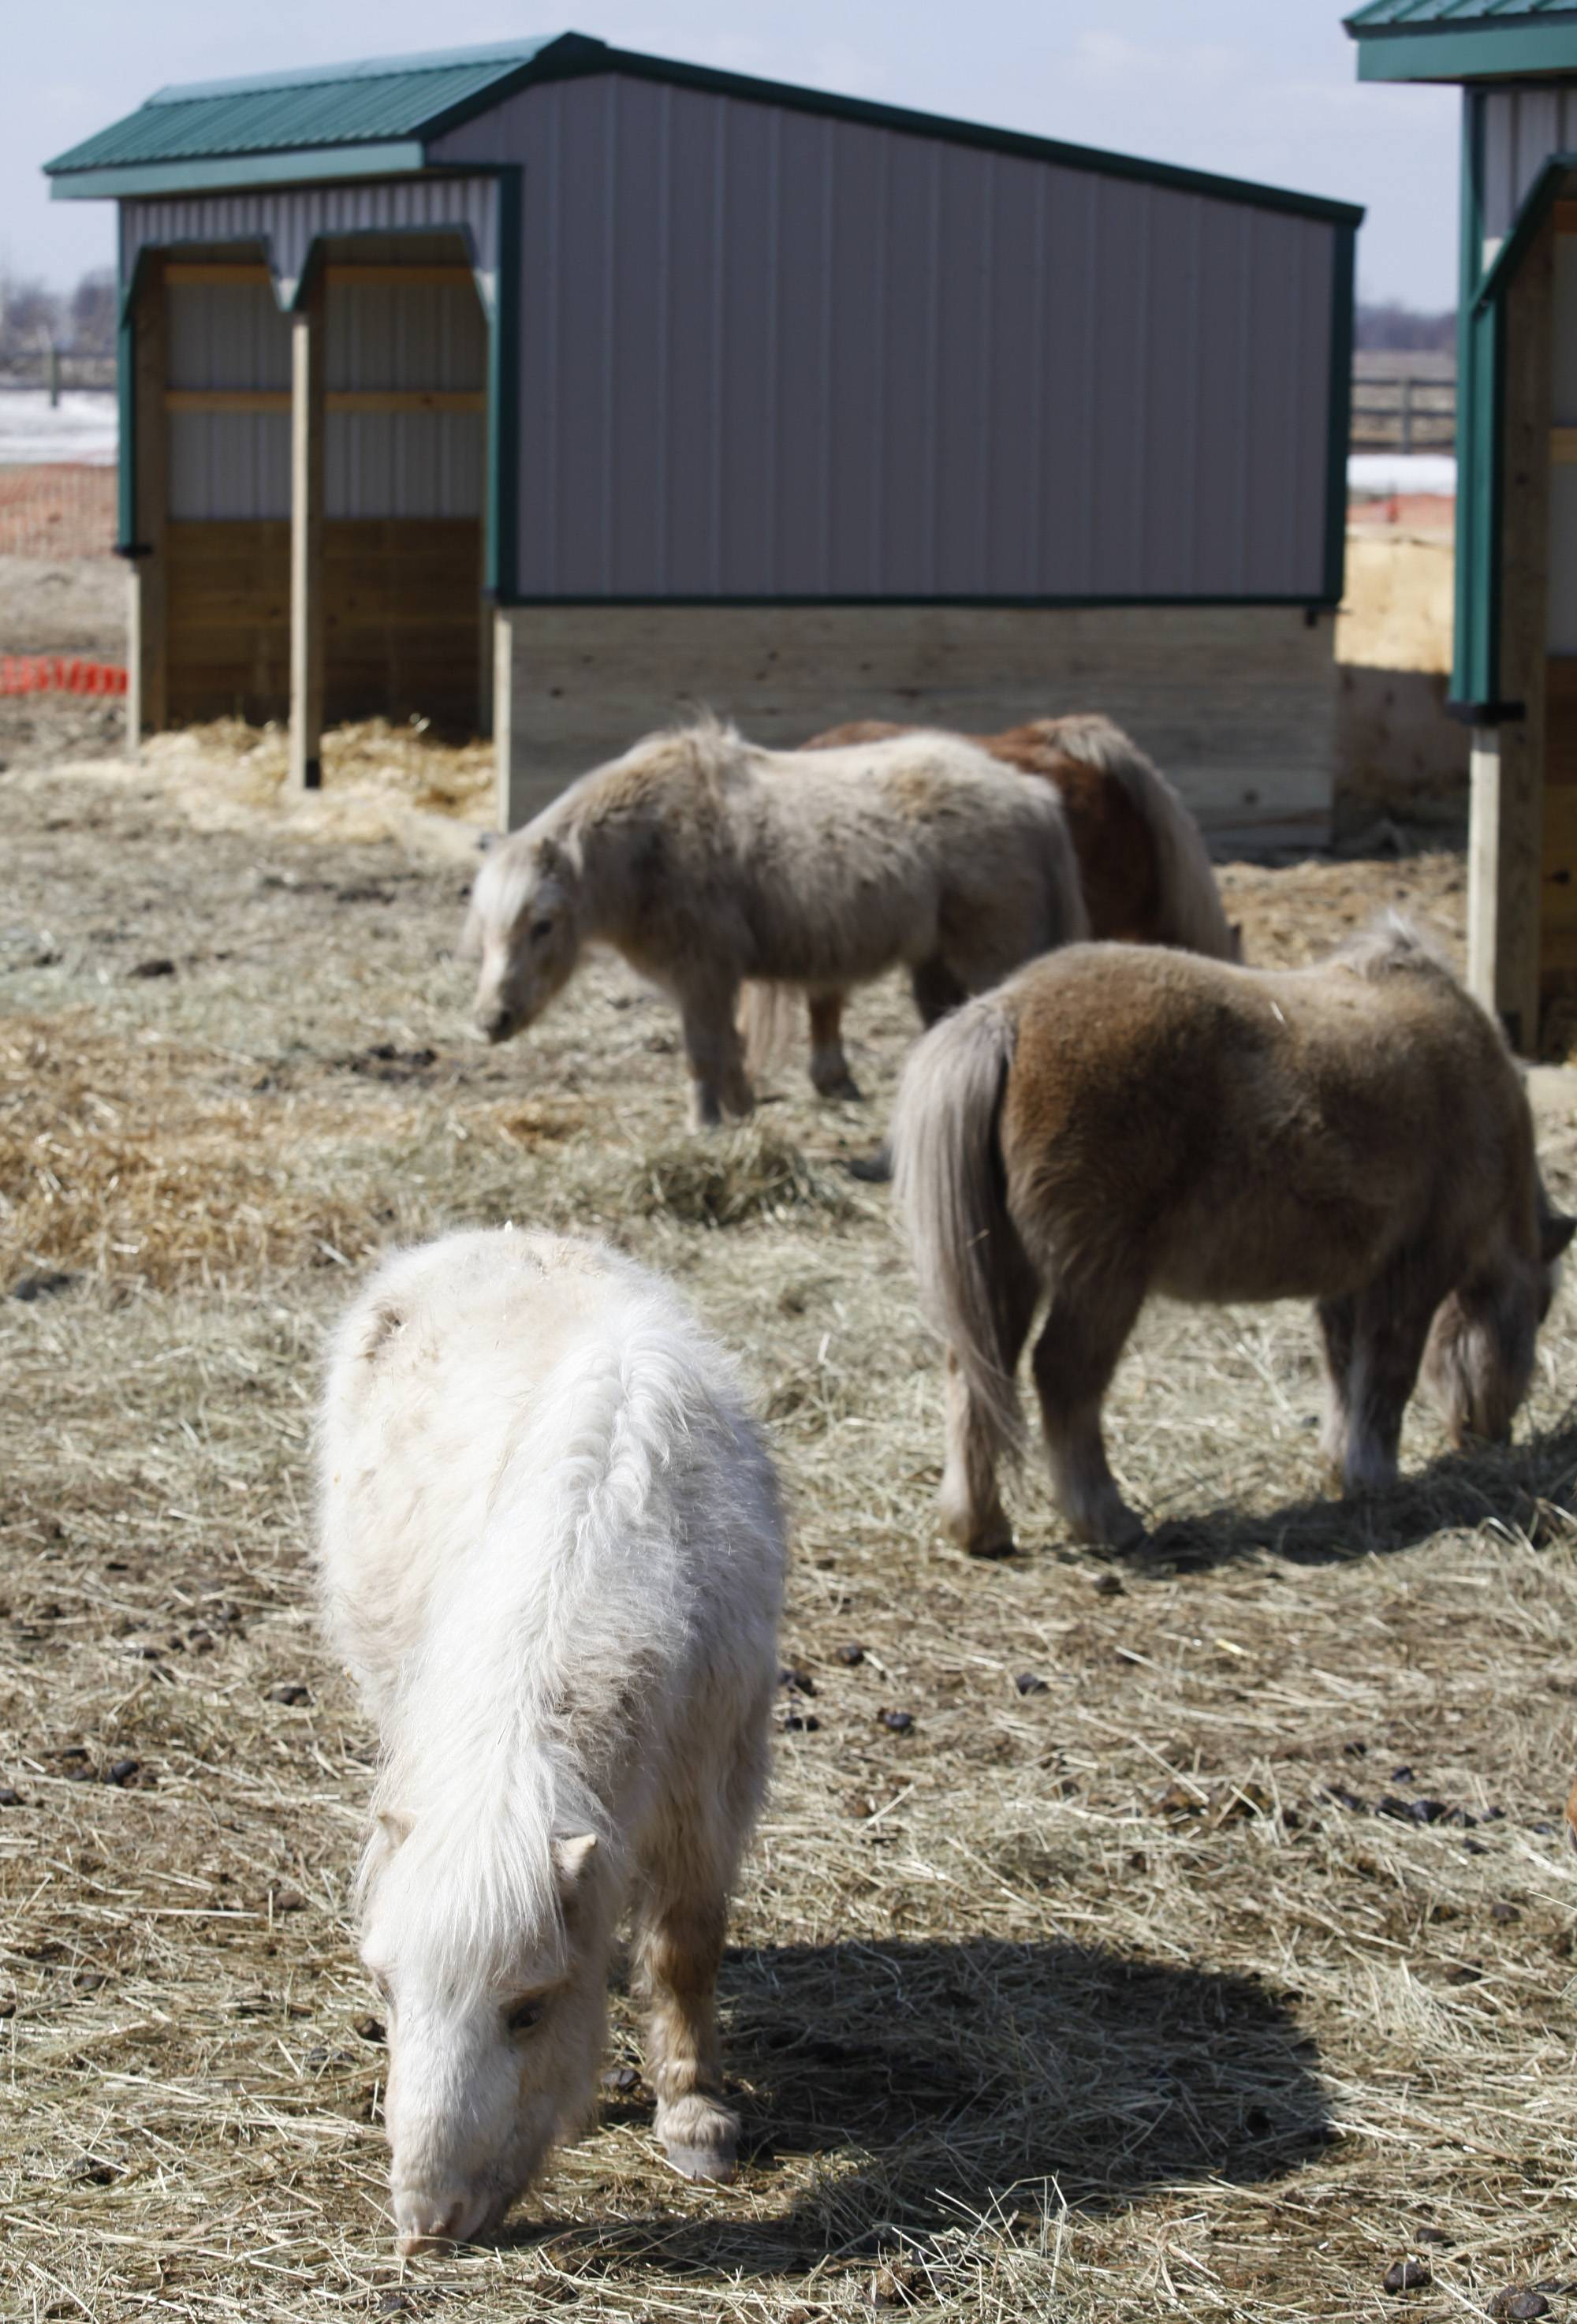 Horses graze Monday afternoon at a farm in rural Kane County. The horses were impounded from an Elgin woman who has been charged with cruelty and neglect.